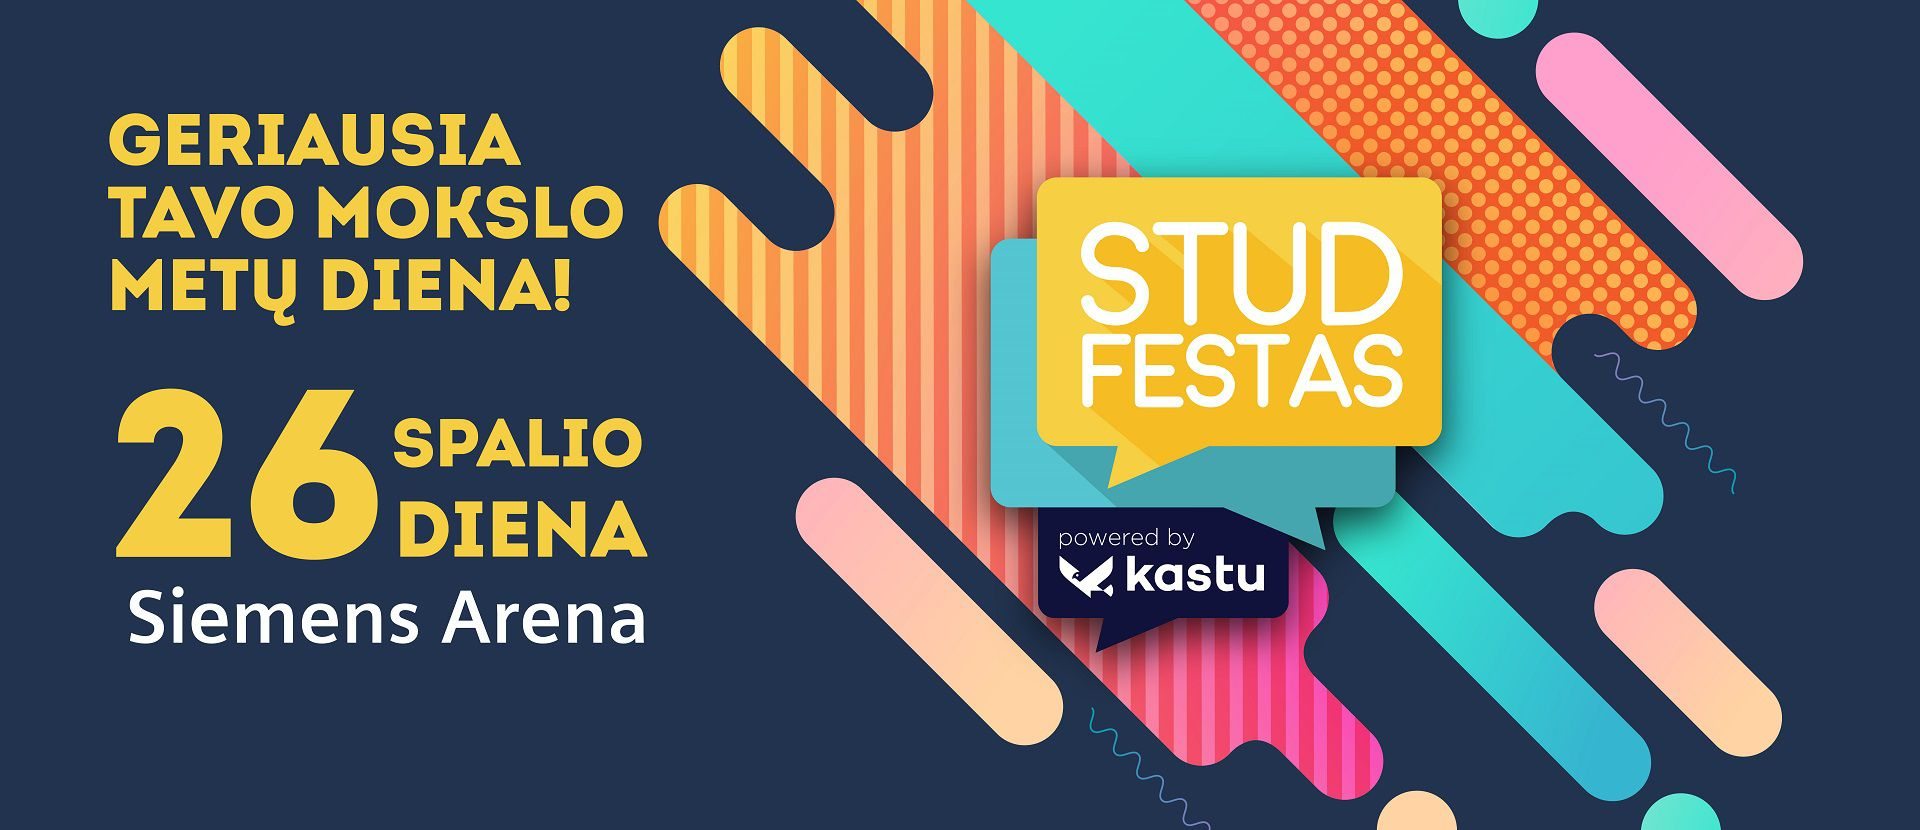 Studfestas - conference about studies and career